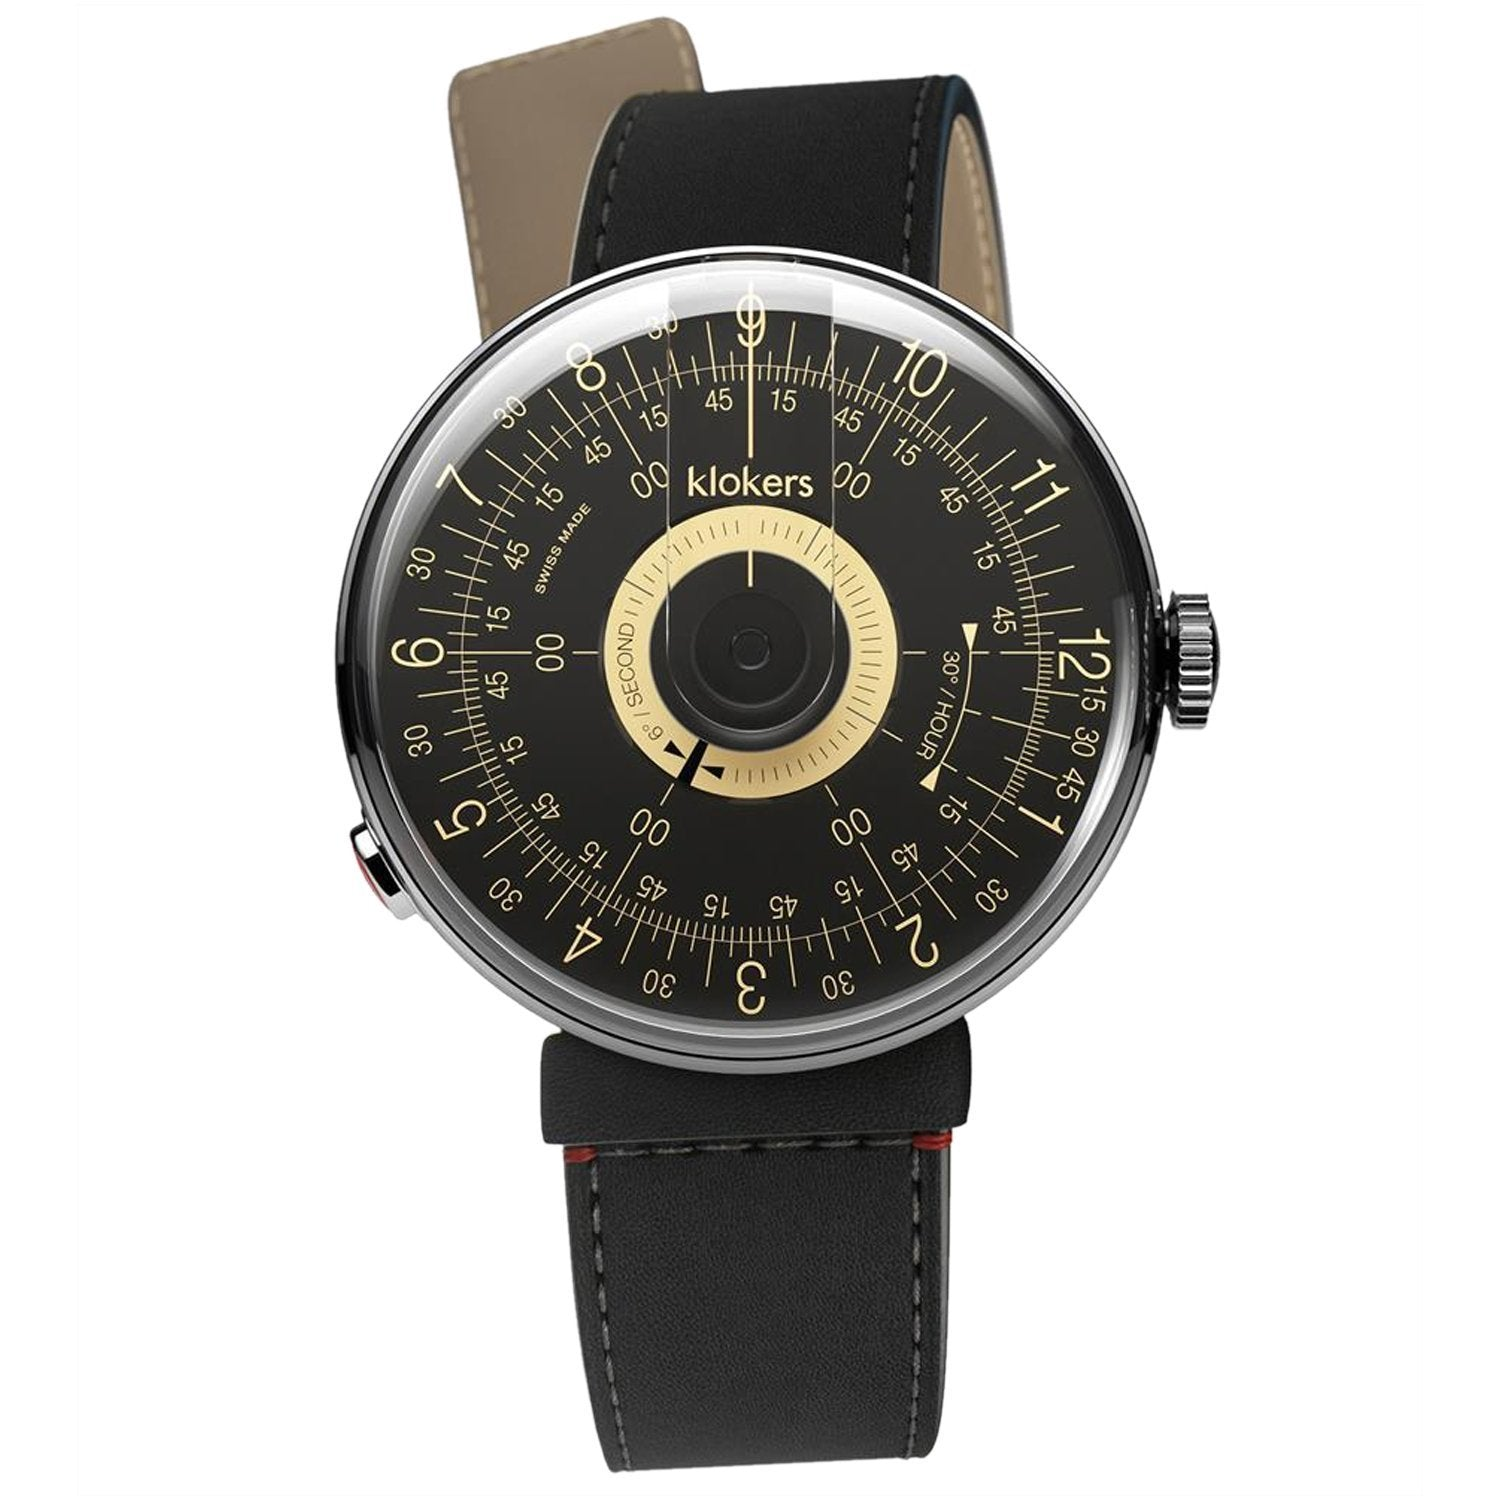 Klokers Klok 08 Black Champagne - Watches & Crystals